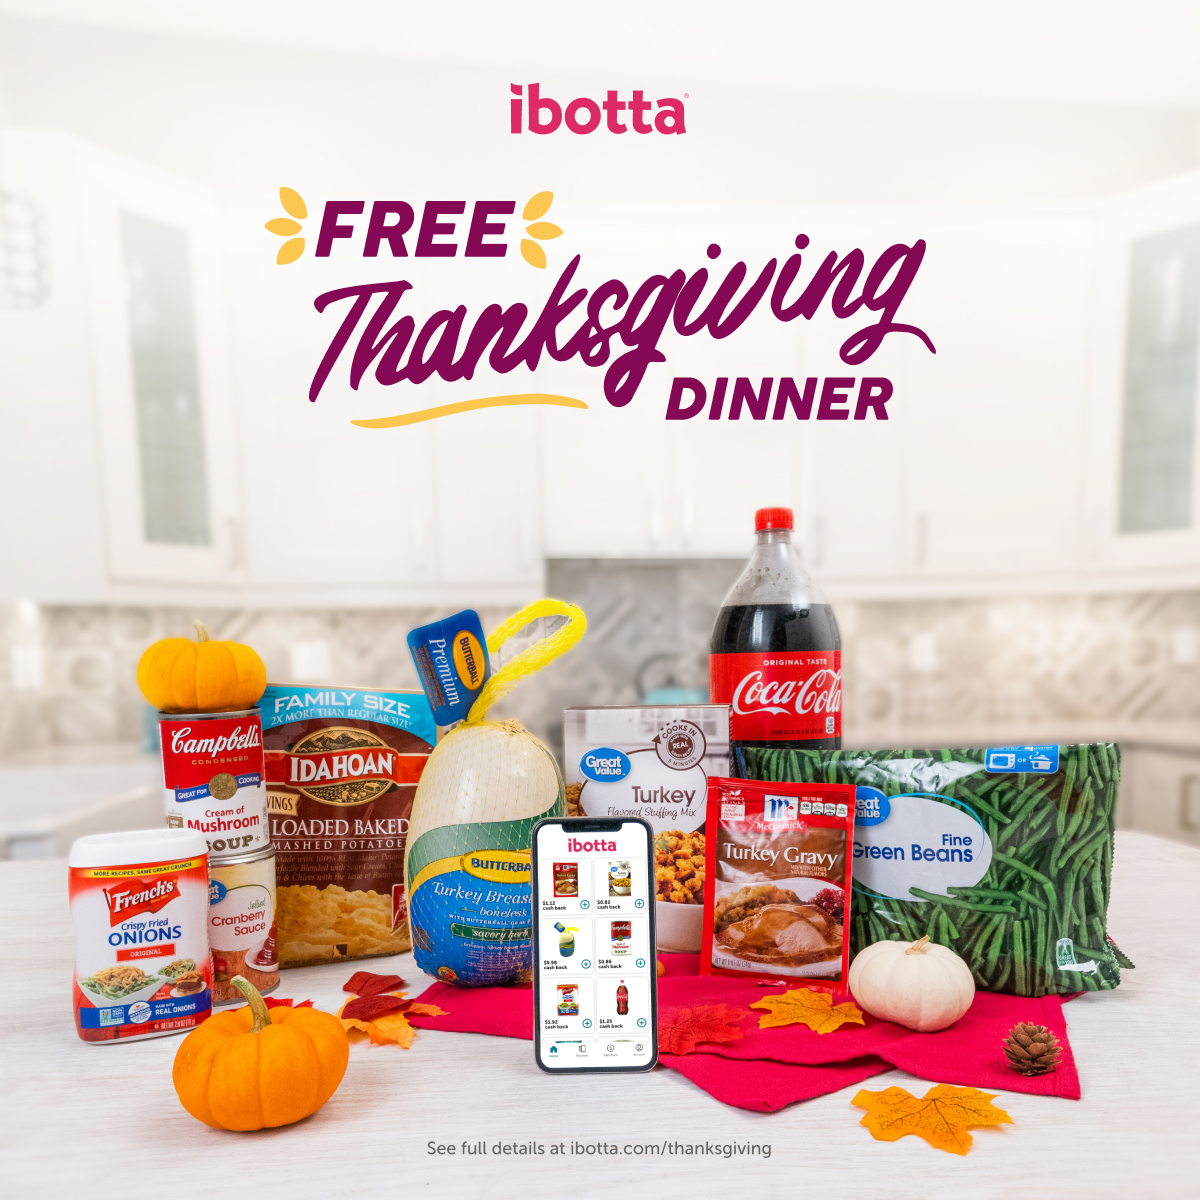 Ibotta_FreeThanksgivingDinner_Products.png